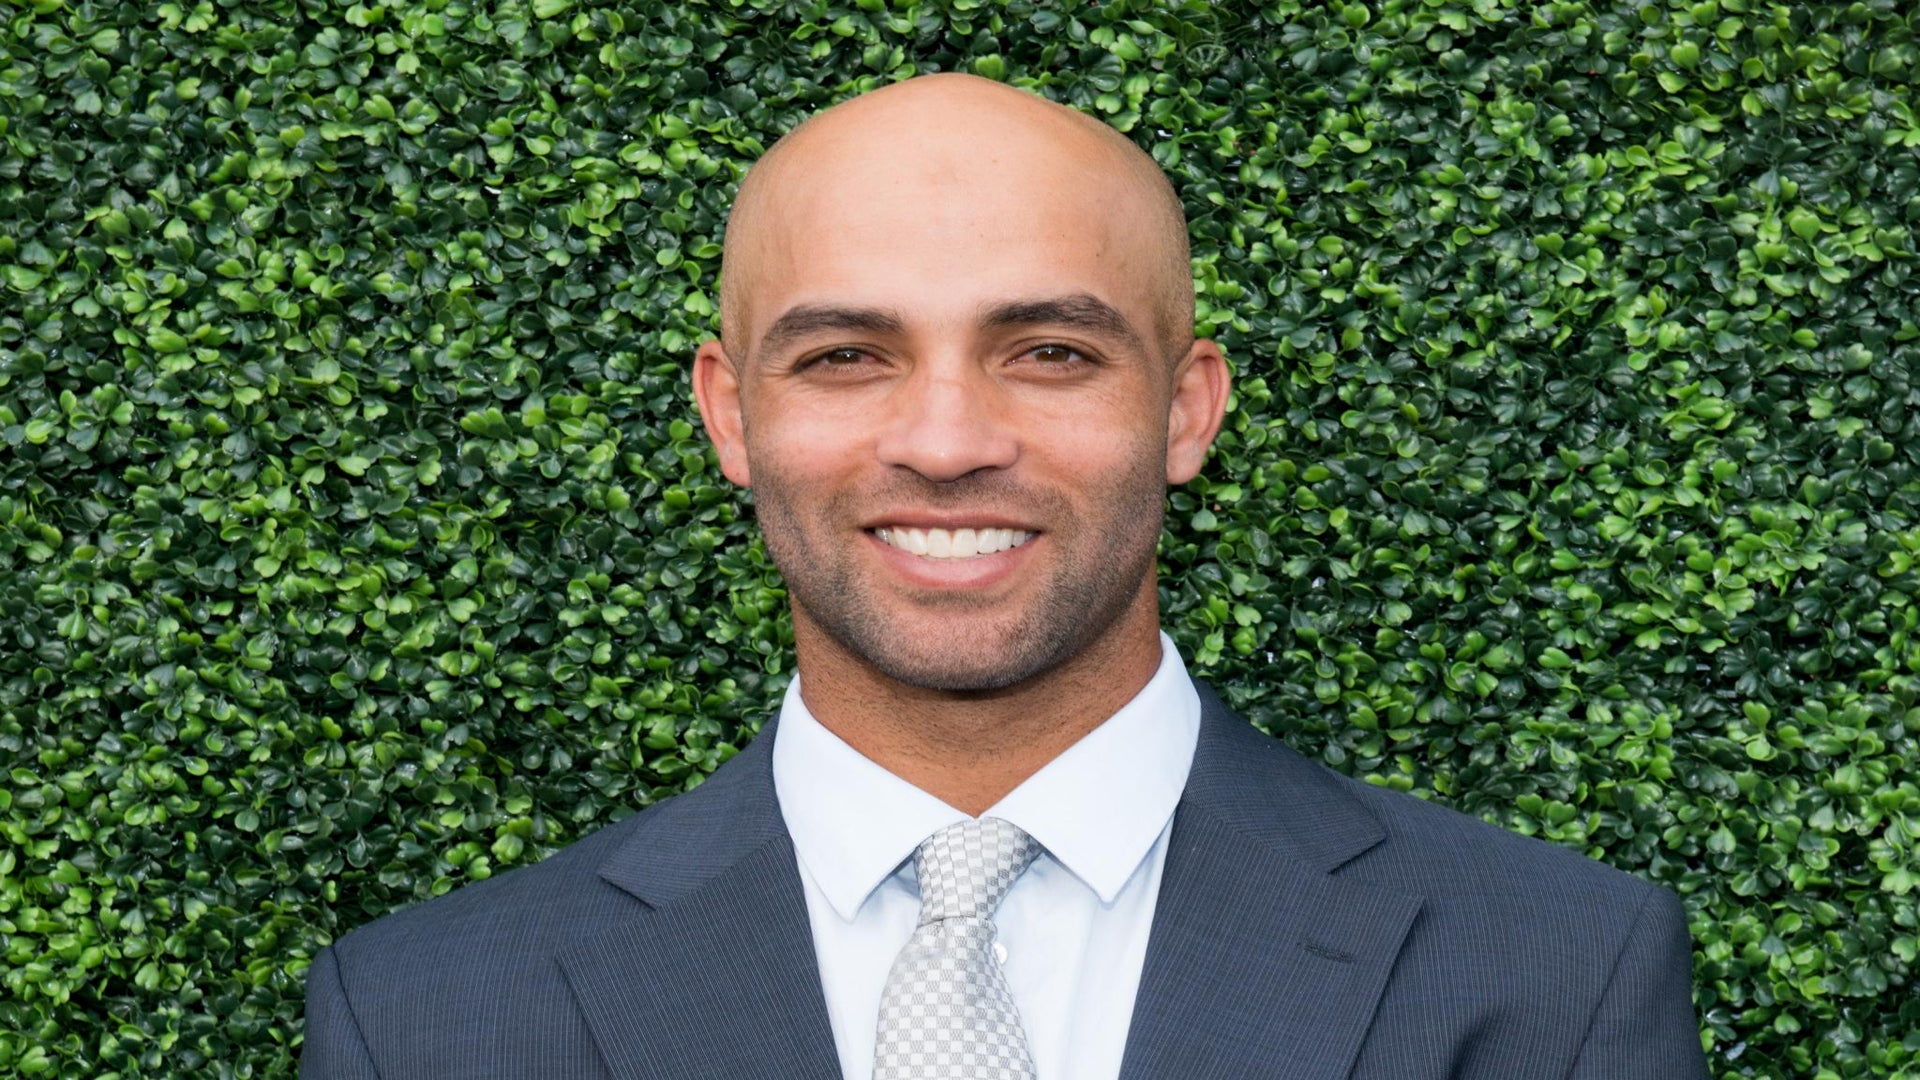 NYPD Releases Surveillance Footage of Police Tackling Tennis Pro James Blake in Wrongful Arrest